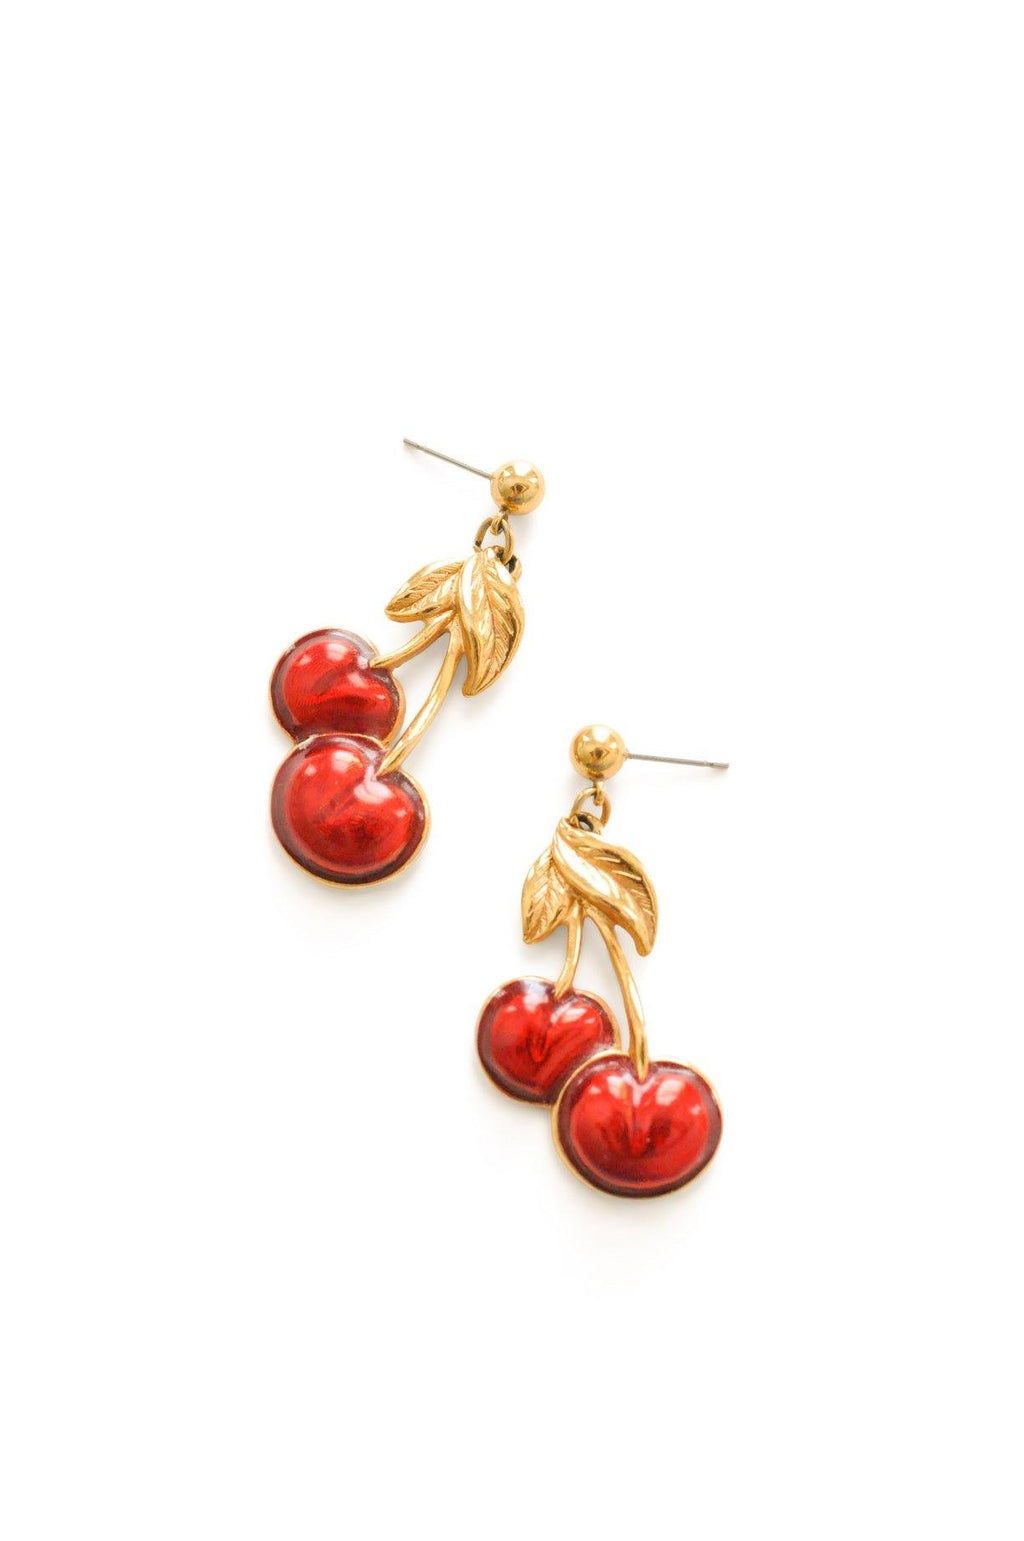 Cherry Pierced Earrings